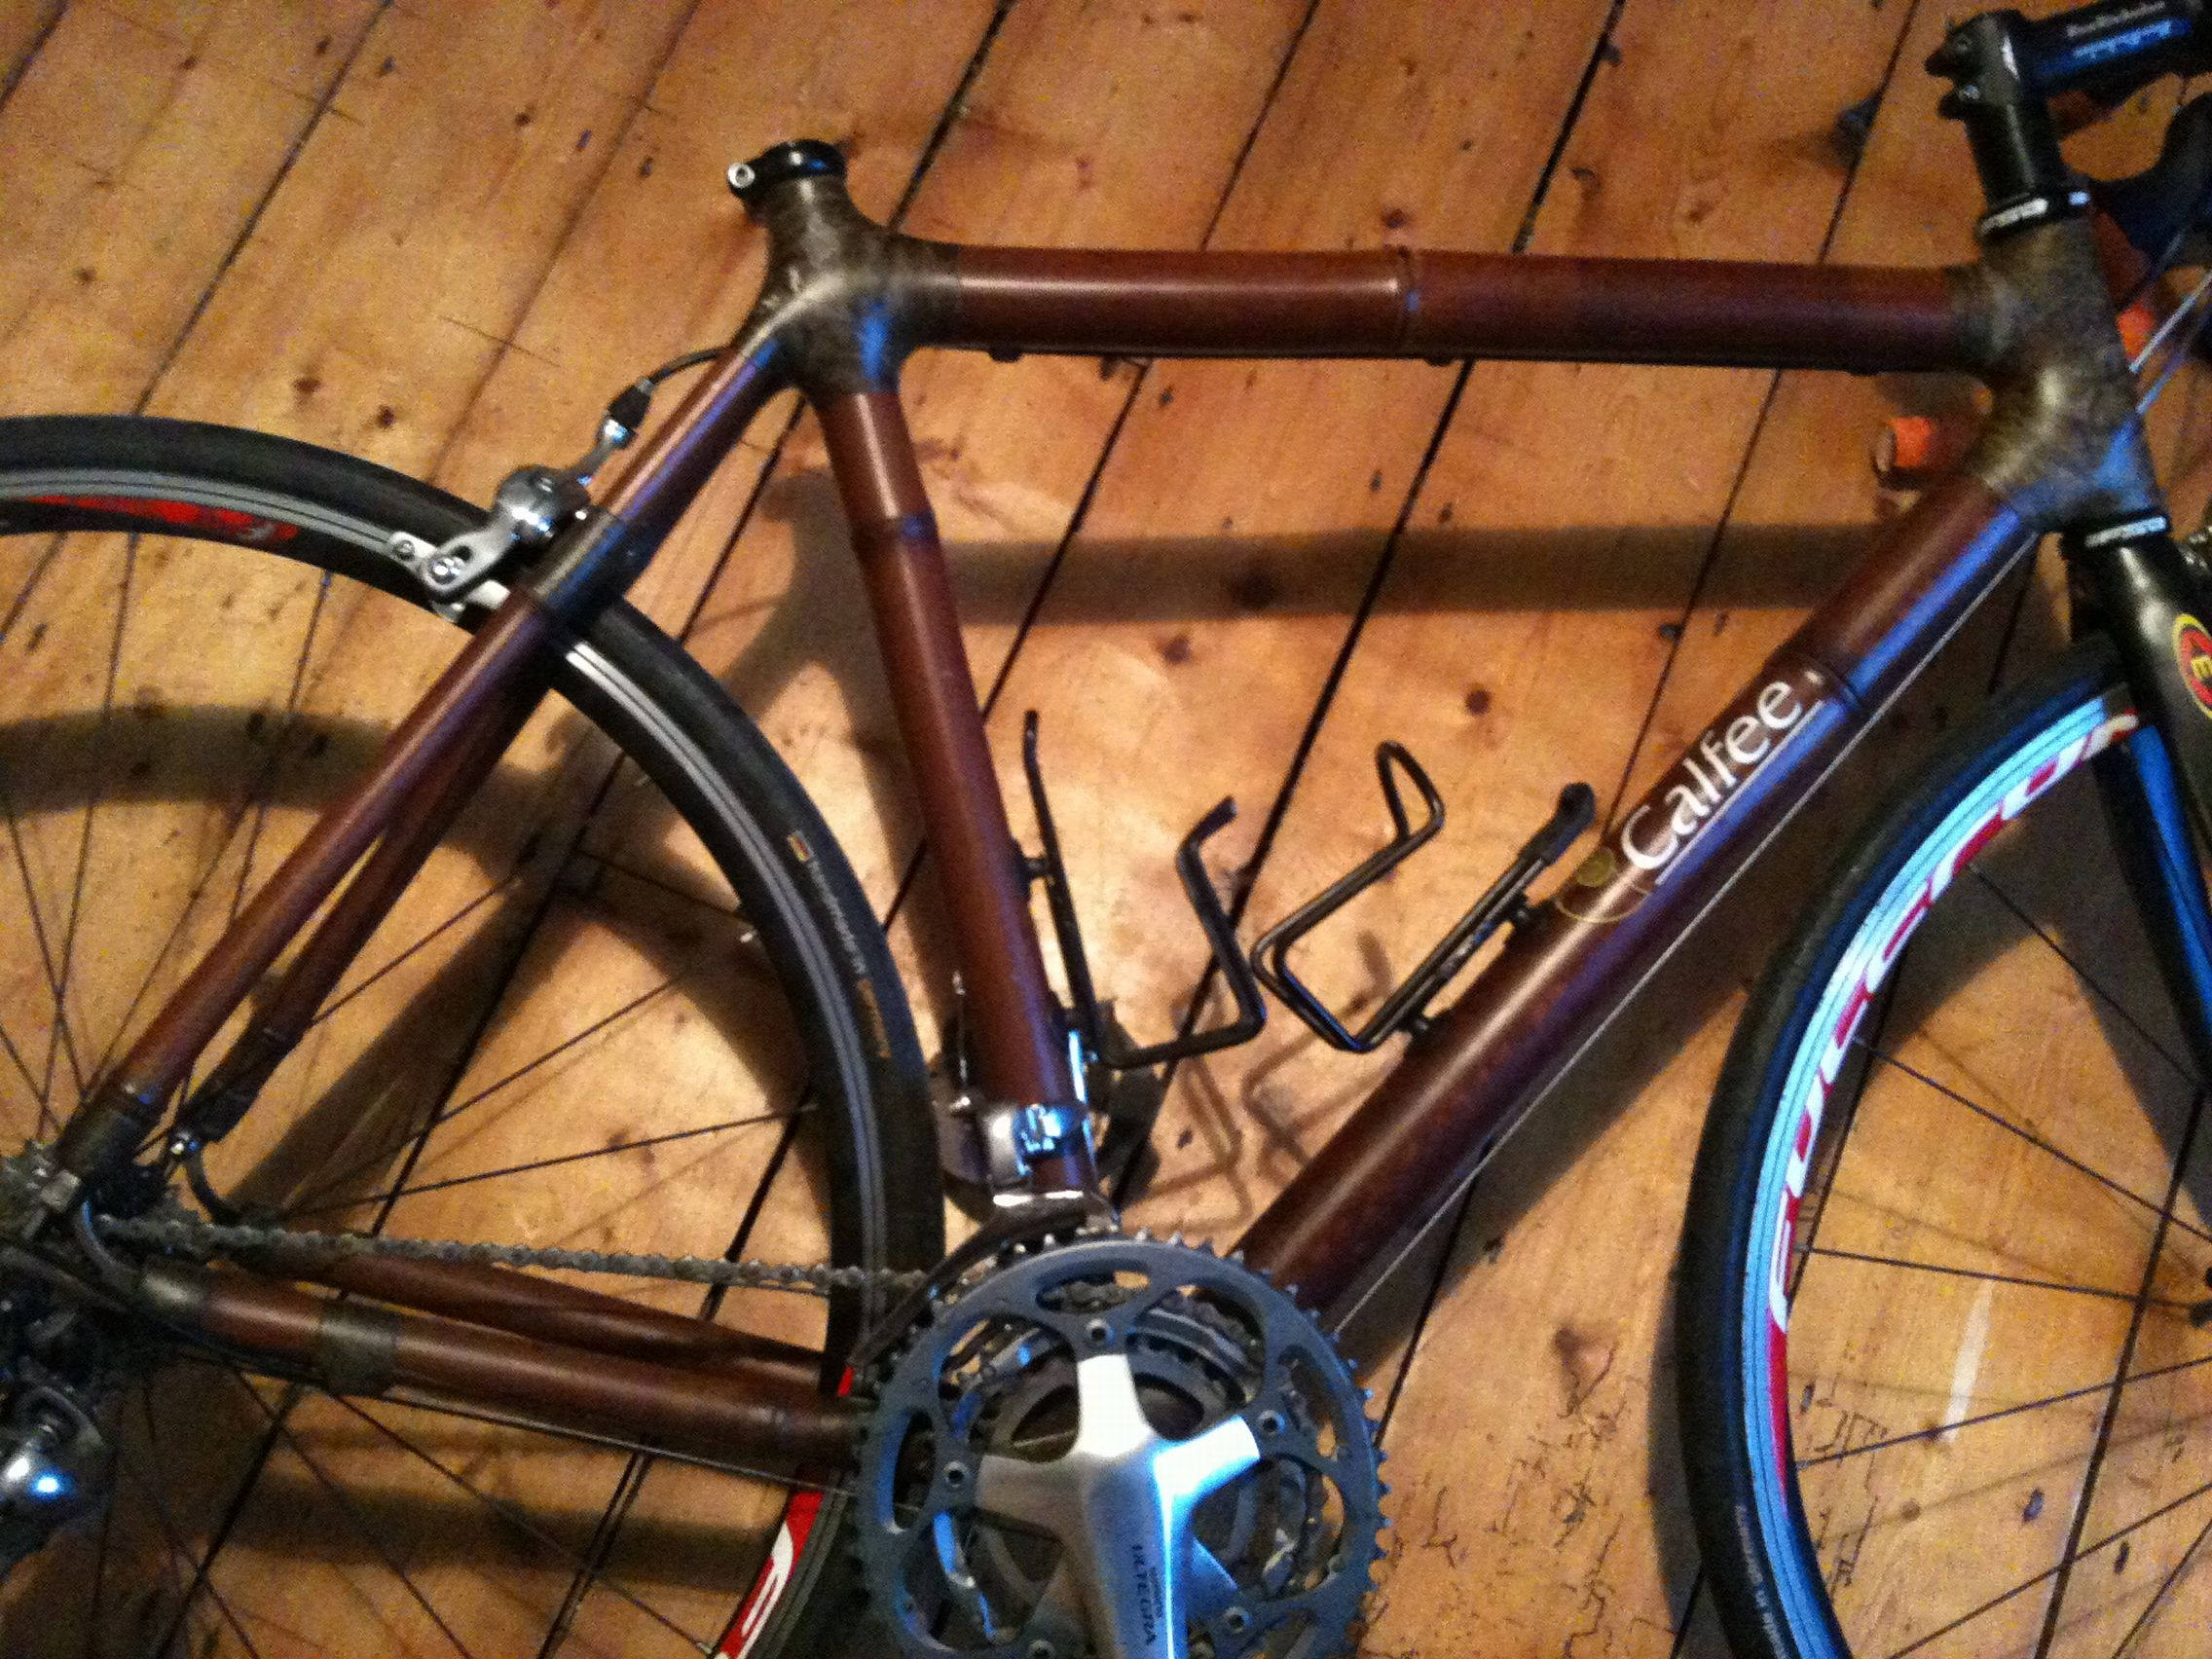 What is your bike made of? Bike frame materials and their properties